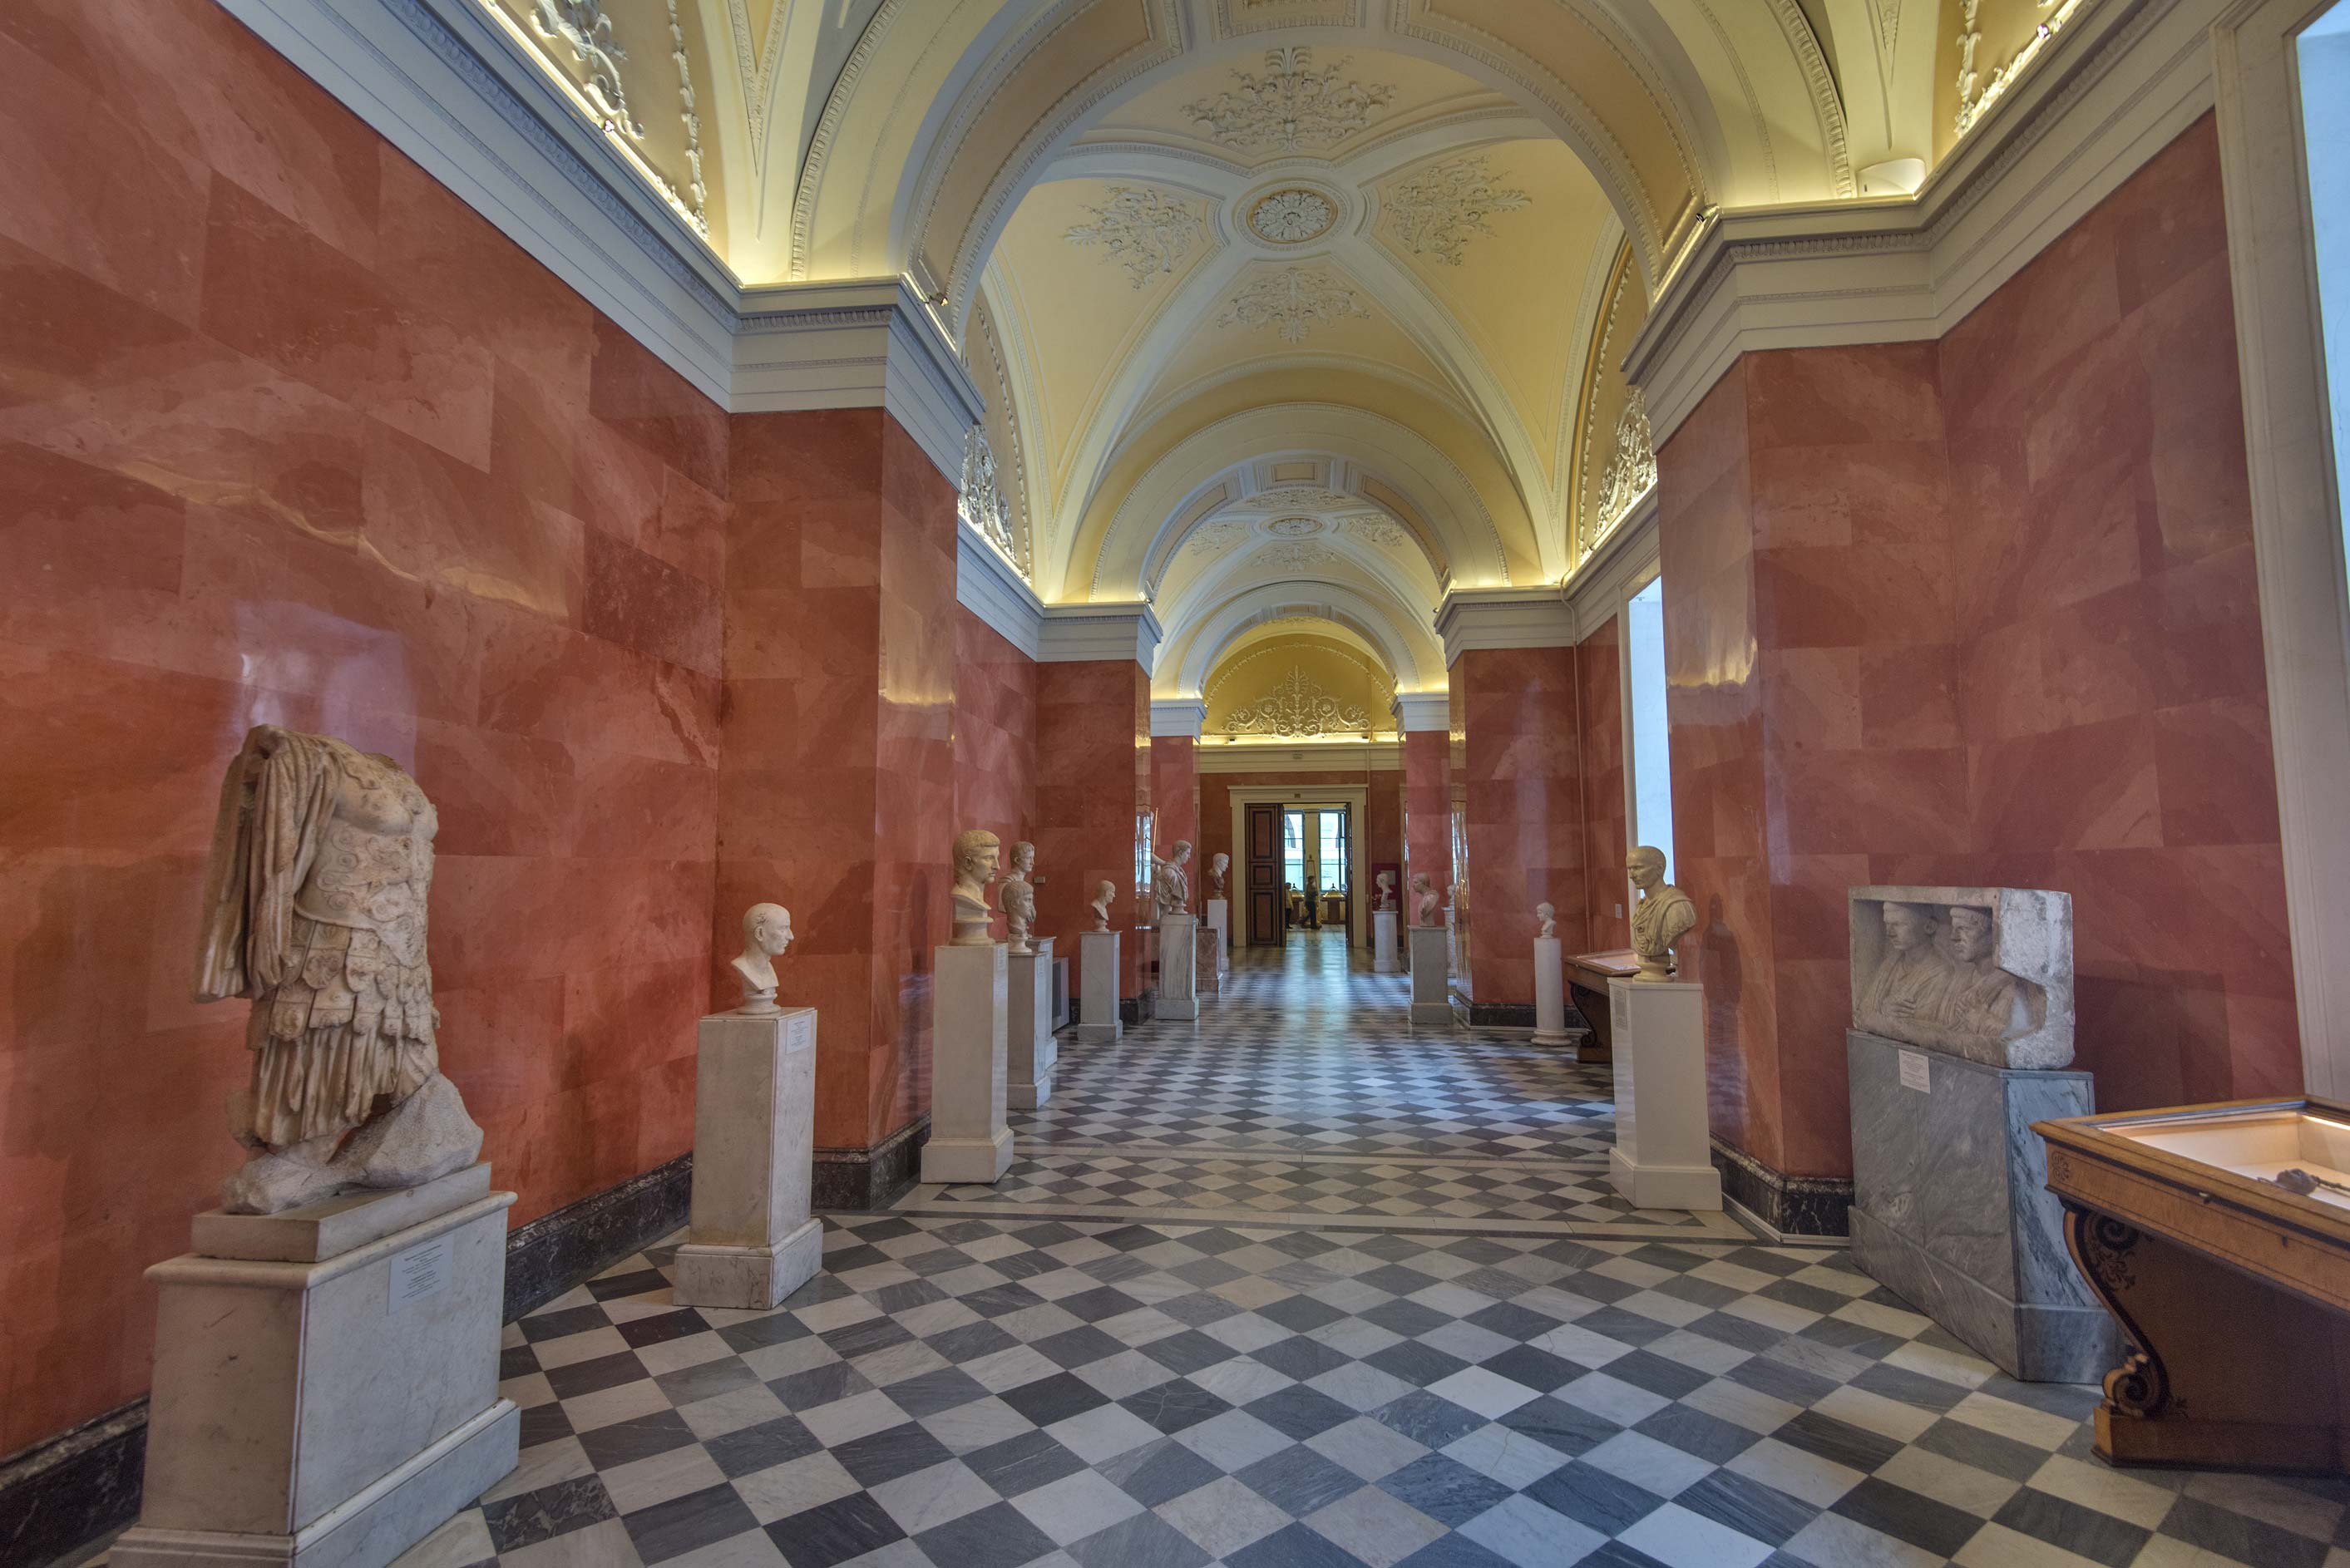 Ancient Rome sculptures in Hermitage Museum. St.Petersburg, Russia